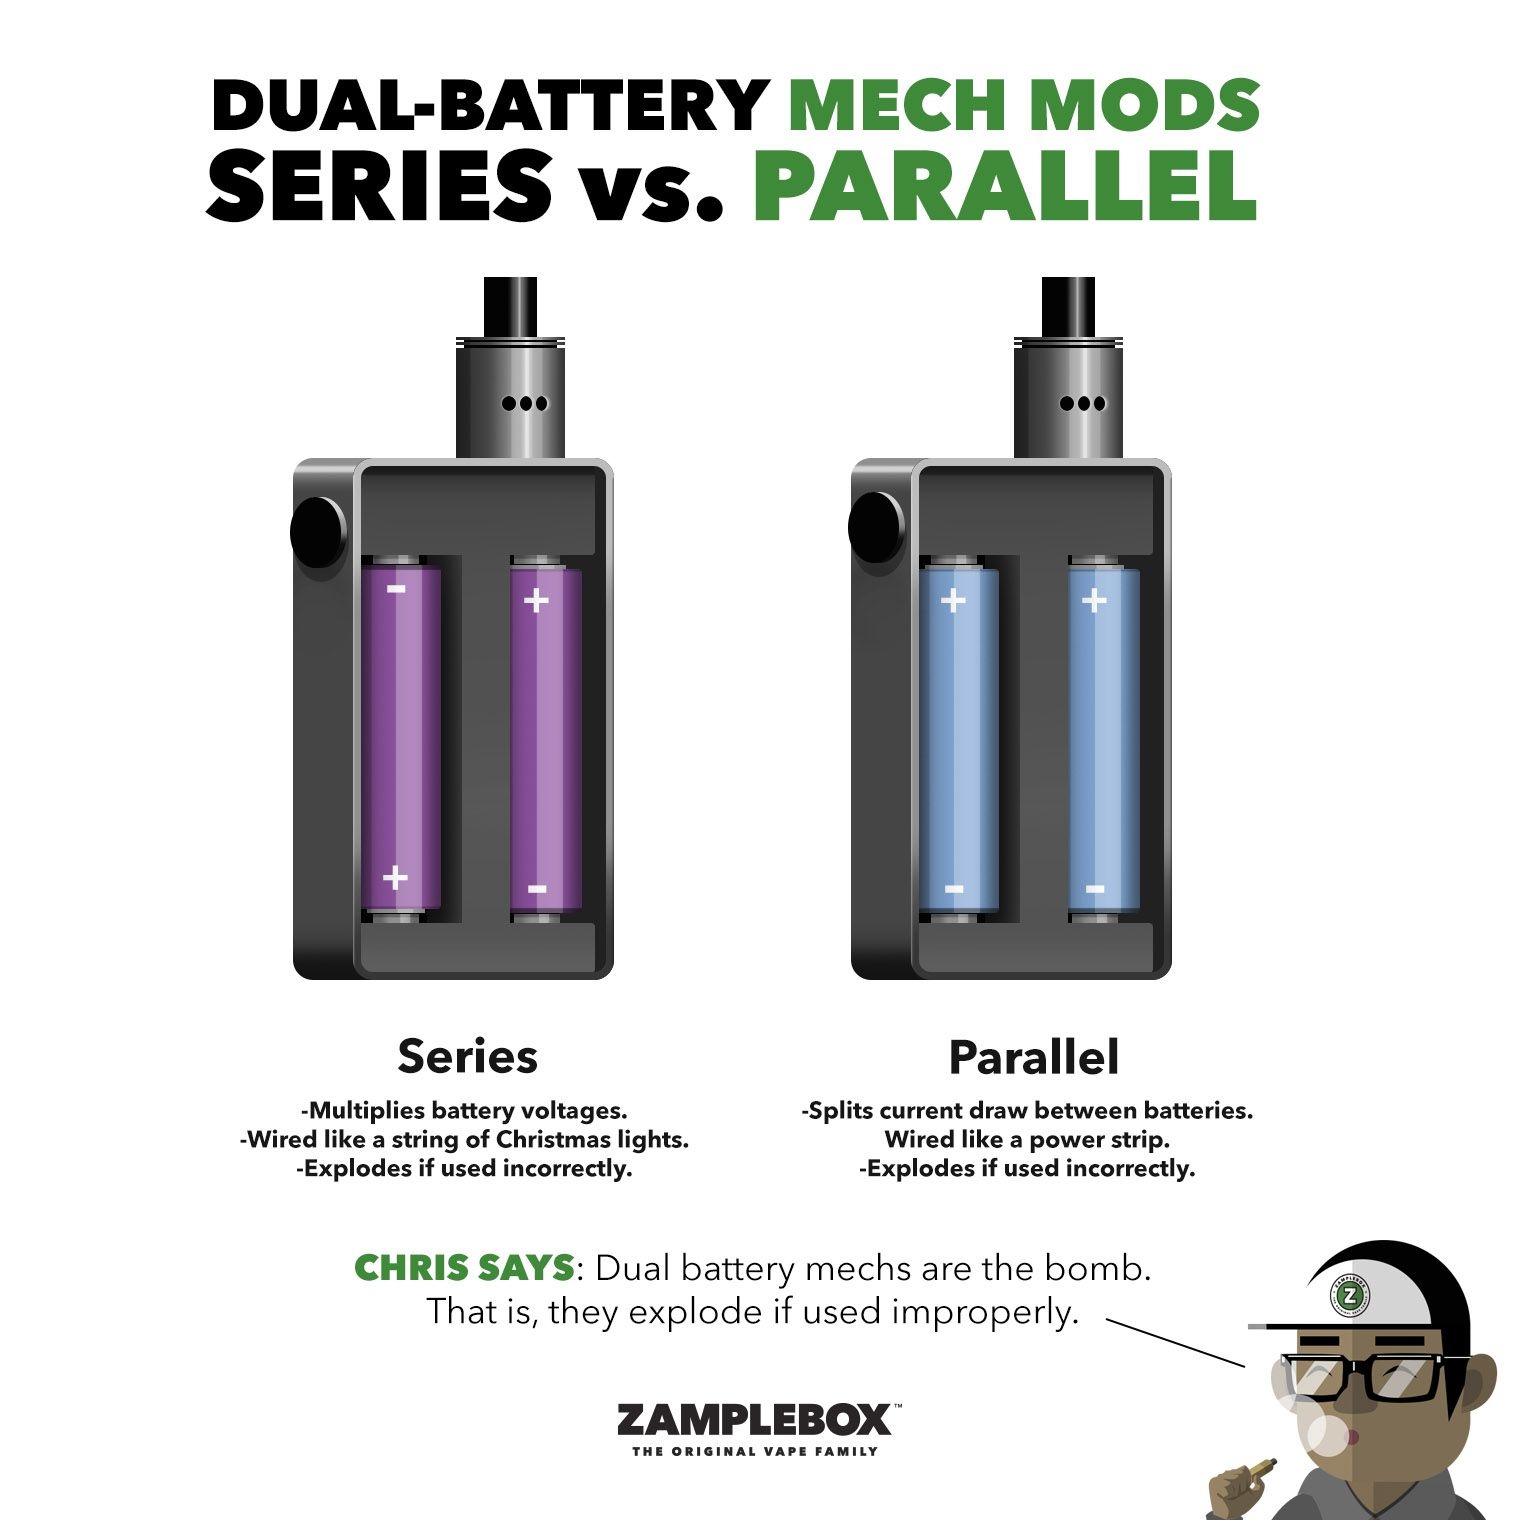 medium resolution of battery orientation is vital to your safety with unregulated parallel and unregulated series box mods get all the details and diagrams here